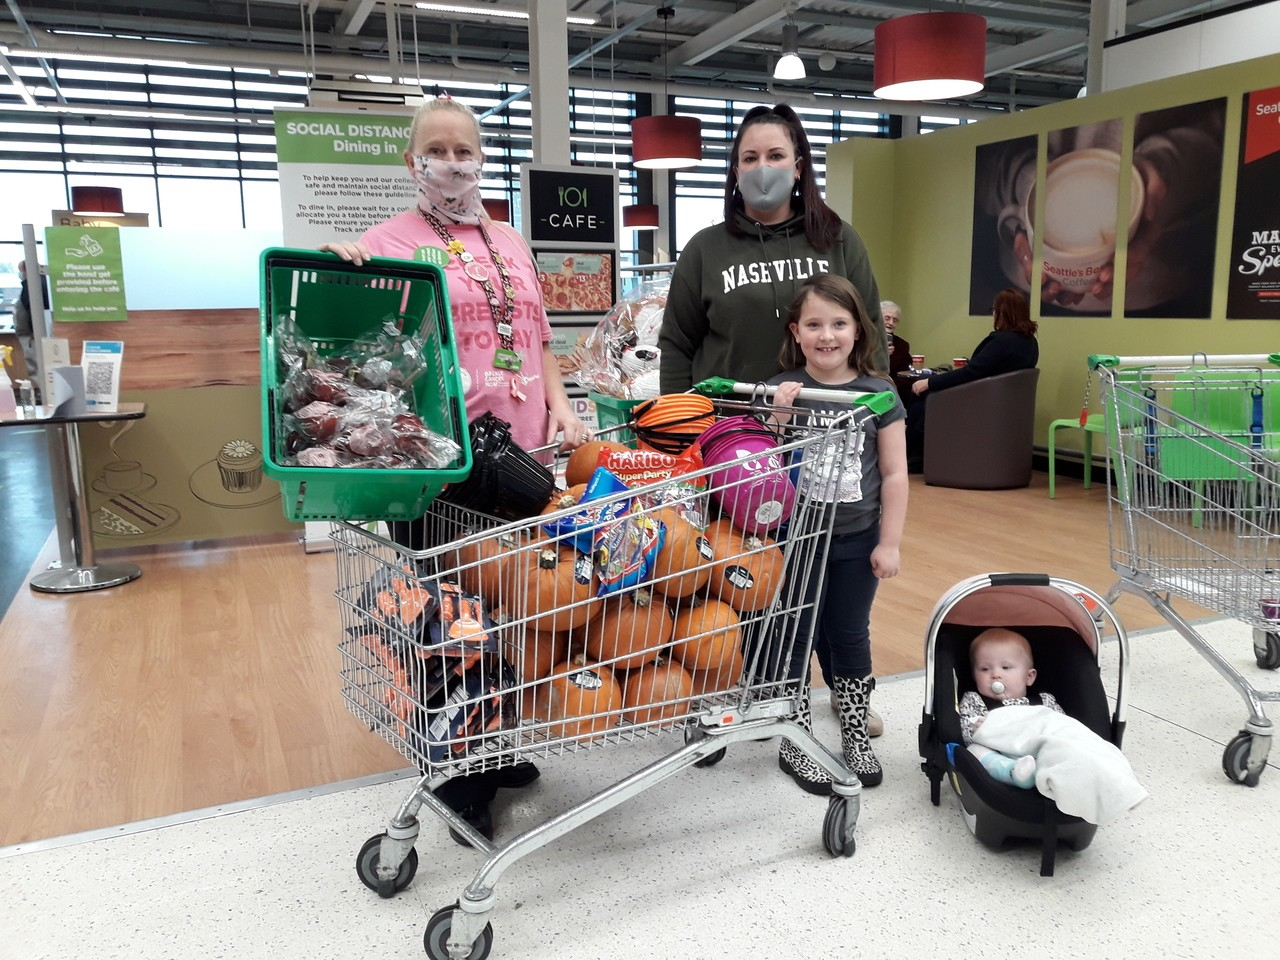 Halloween treats for Kidsmart | Asda Swinton